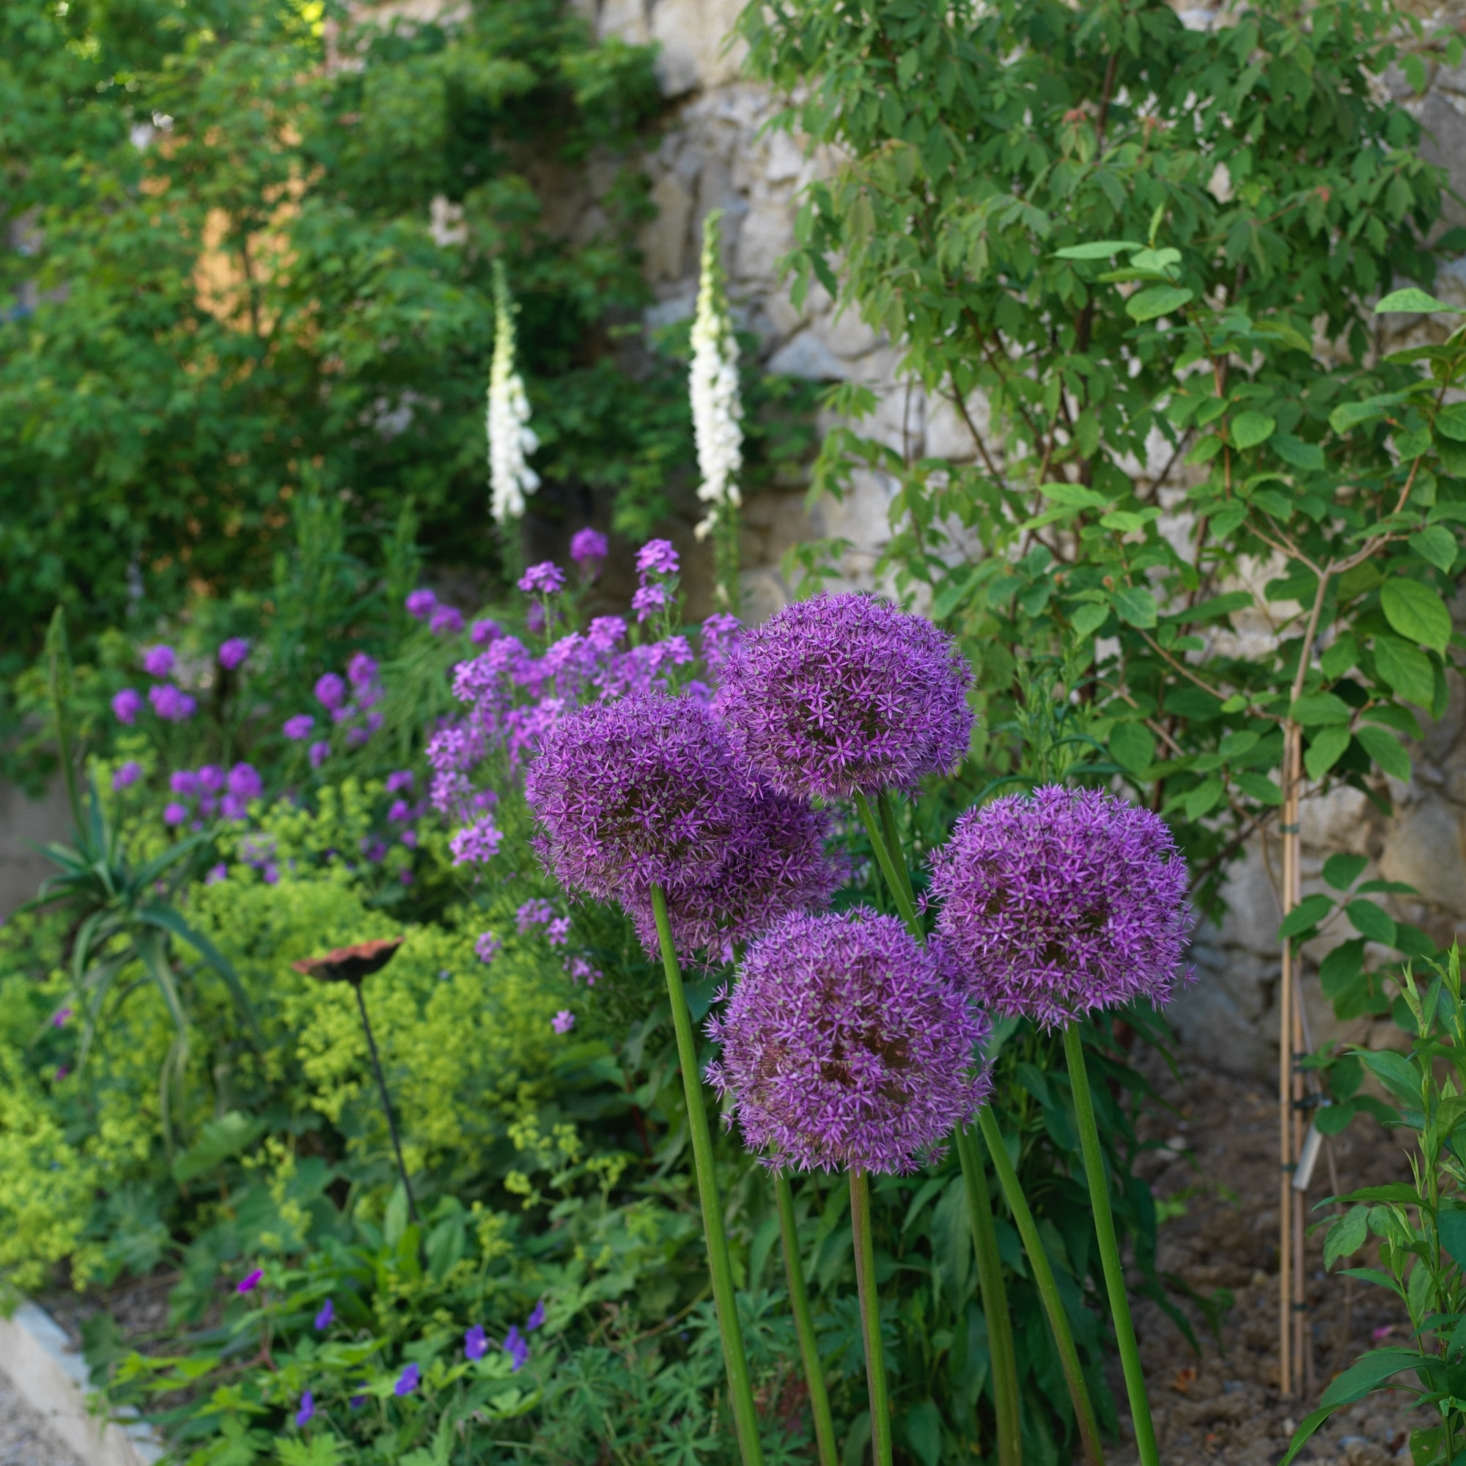 Purple drumstick alliums (Alliumsphaerocephalon) bloom in clusters on either side of the path. See more growing tips in Alliums: A Field Guide to Planting, Care & Design.